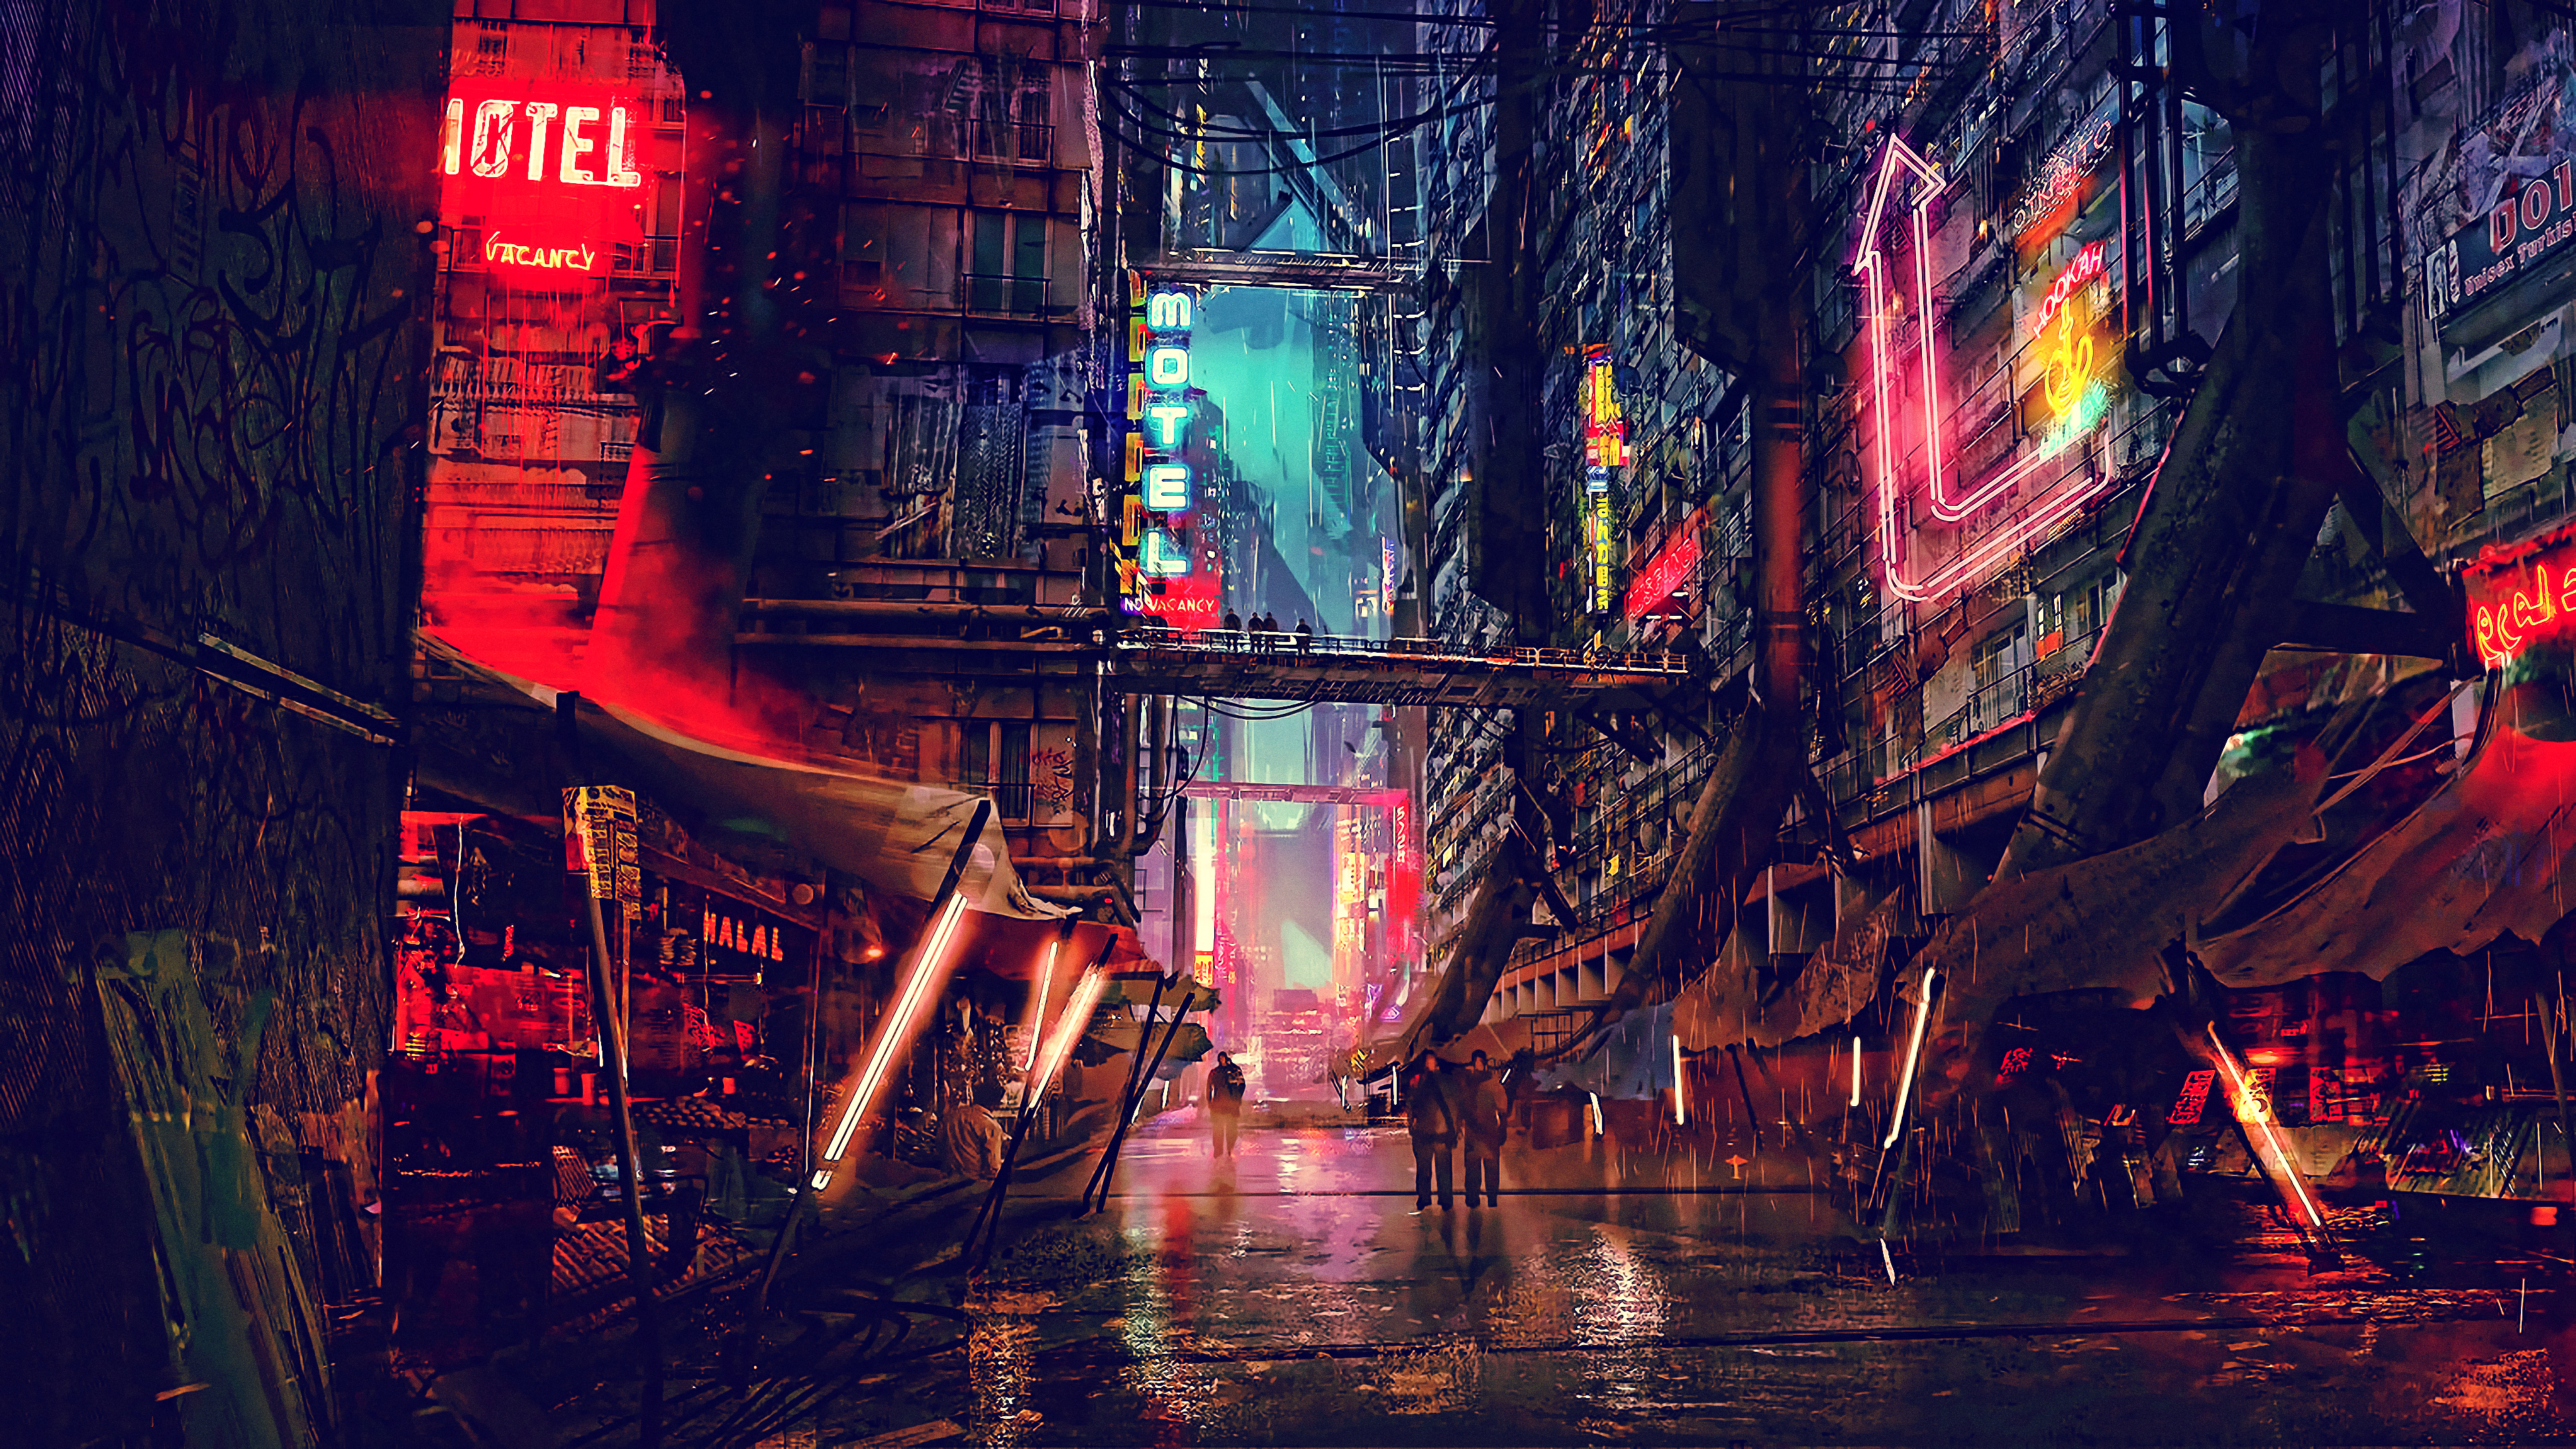 Science Fiction Cyberpunk Futuristic City Digital Art 4k Hd Artist 4k Wallpapers Images Backgrounds Photos And Pictures